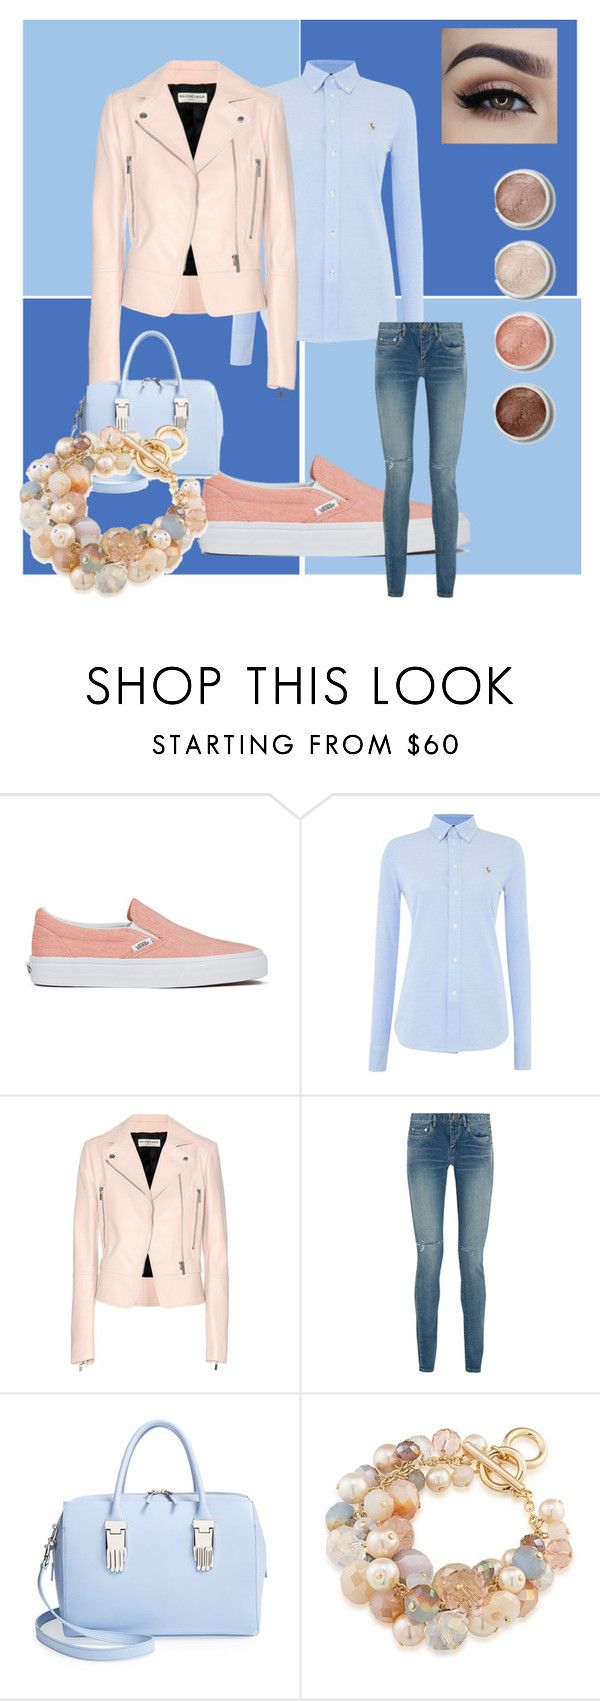 """""""Untitled #199"""" by frupapp on Polyvore featuring Vans, Polo Ralph Lauren, Balenciaga, Yves Saint Laurent, Opening Ceremony, Carolee and Terre Mère"""